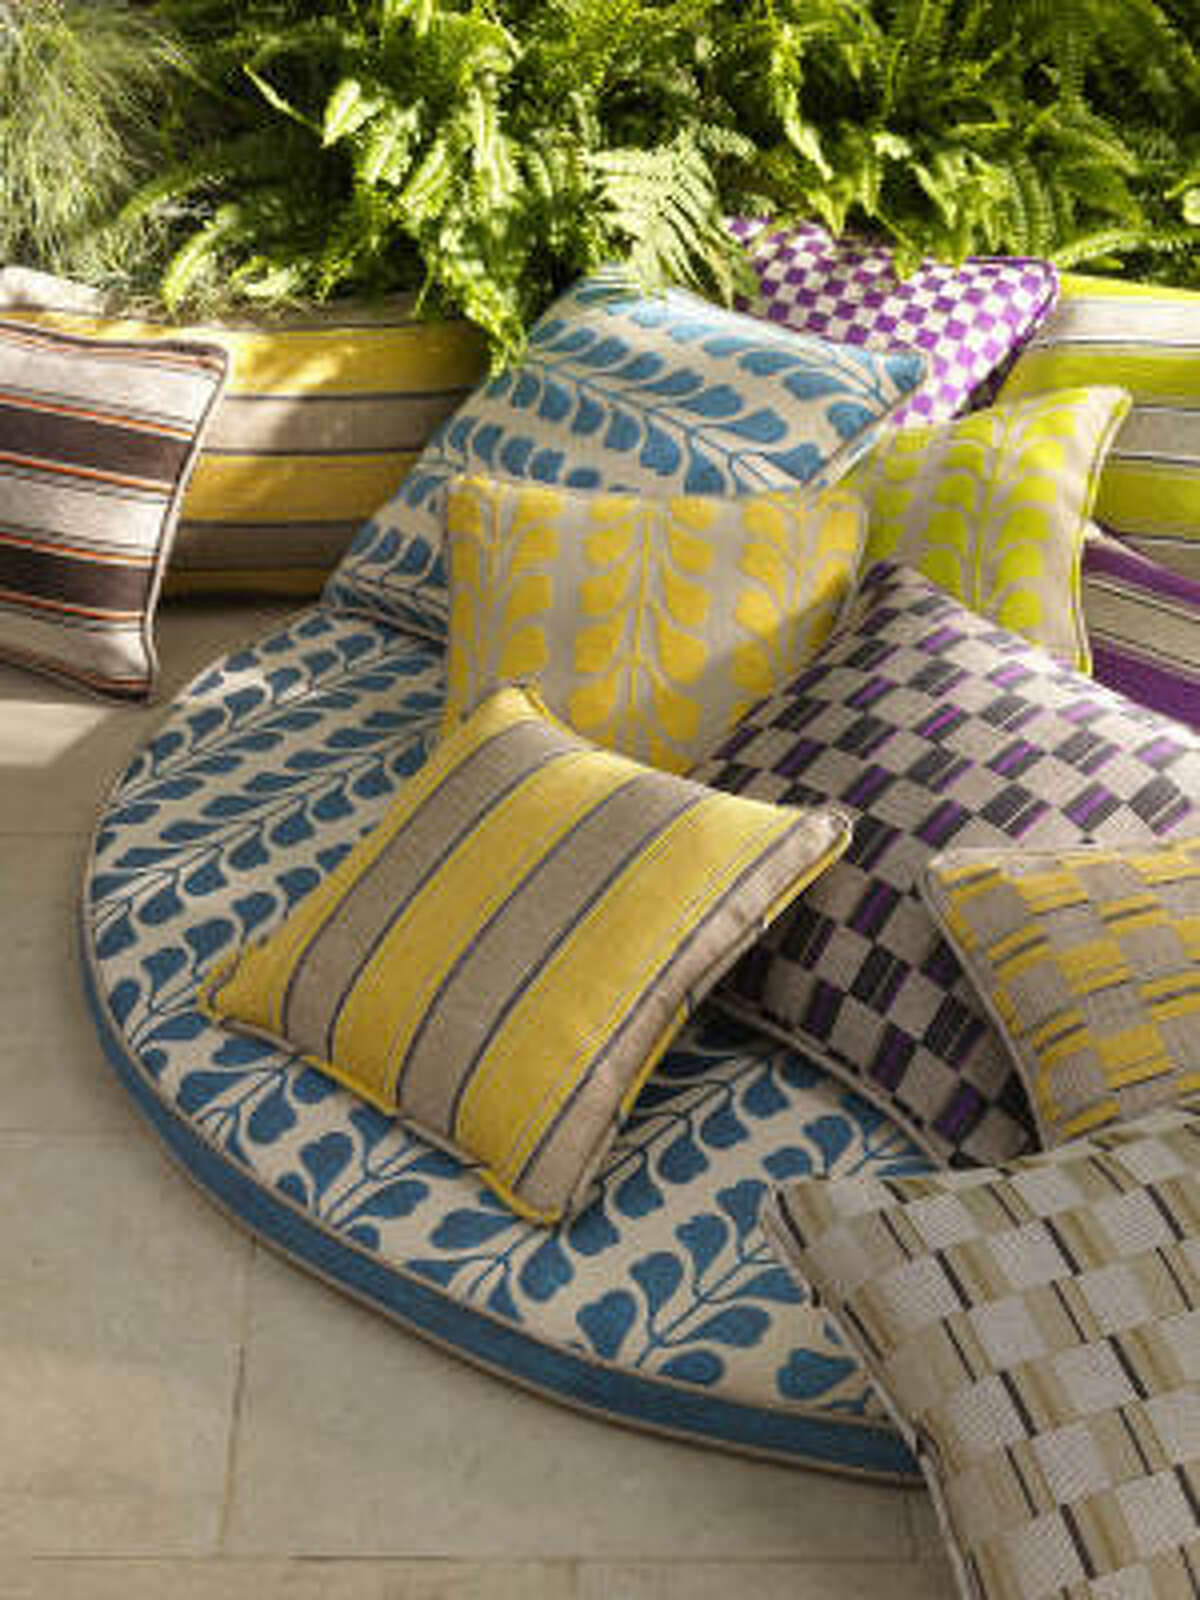 Jane Brown uses solid neutral fabrics for outdoor furniture so she can easily update with new accent pillows in the latest colors and patterns.